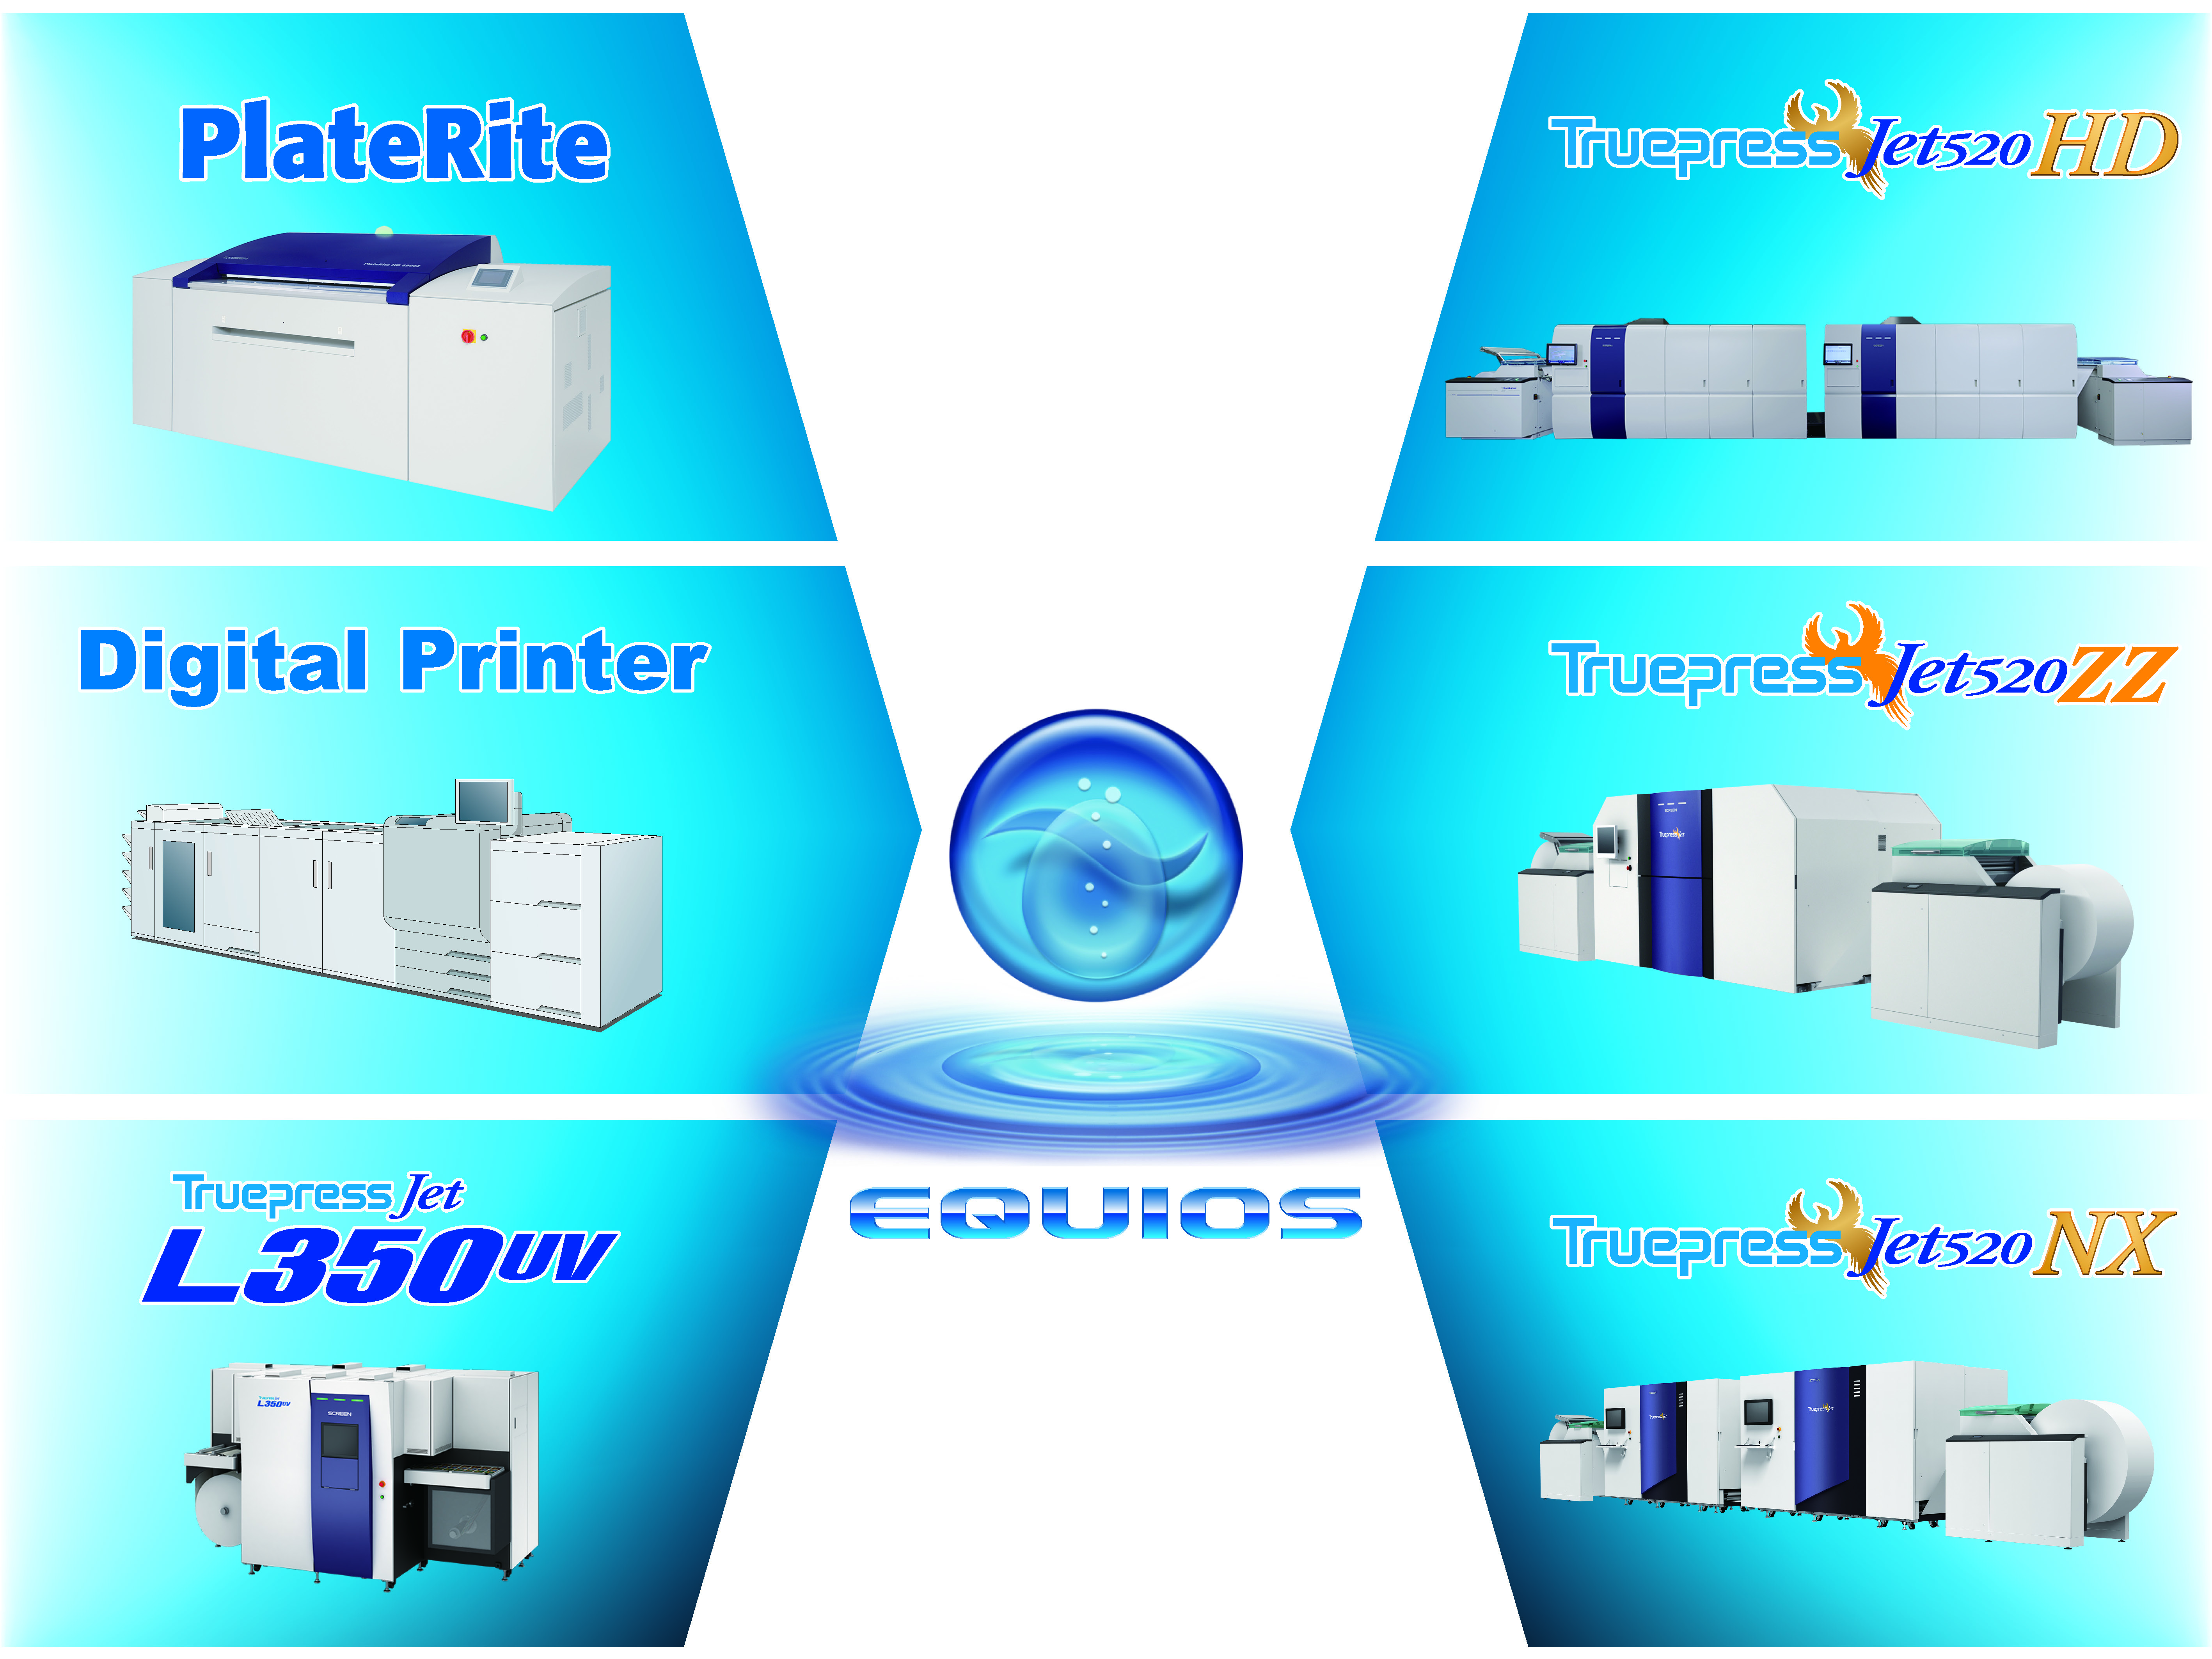 Image from SCREEN EQUIOS WORKFLOW ENHANCES LEARNING EXPERIENCE AT TWO EUROPEAN GRAPHIC ARTS COLLEGES